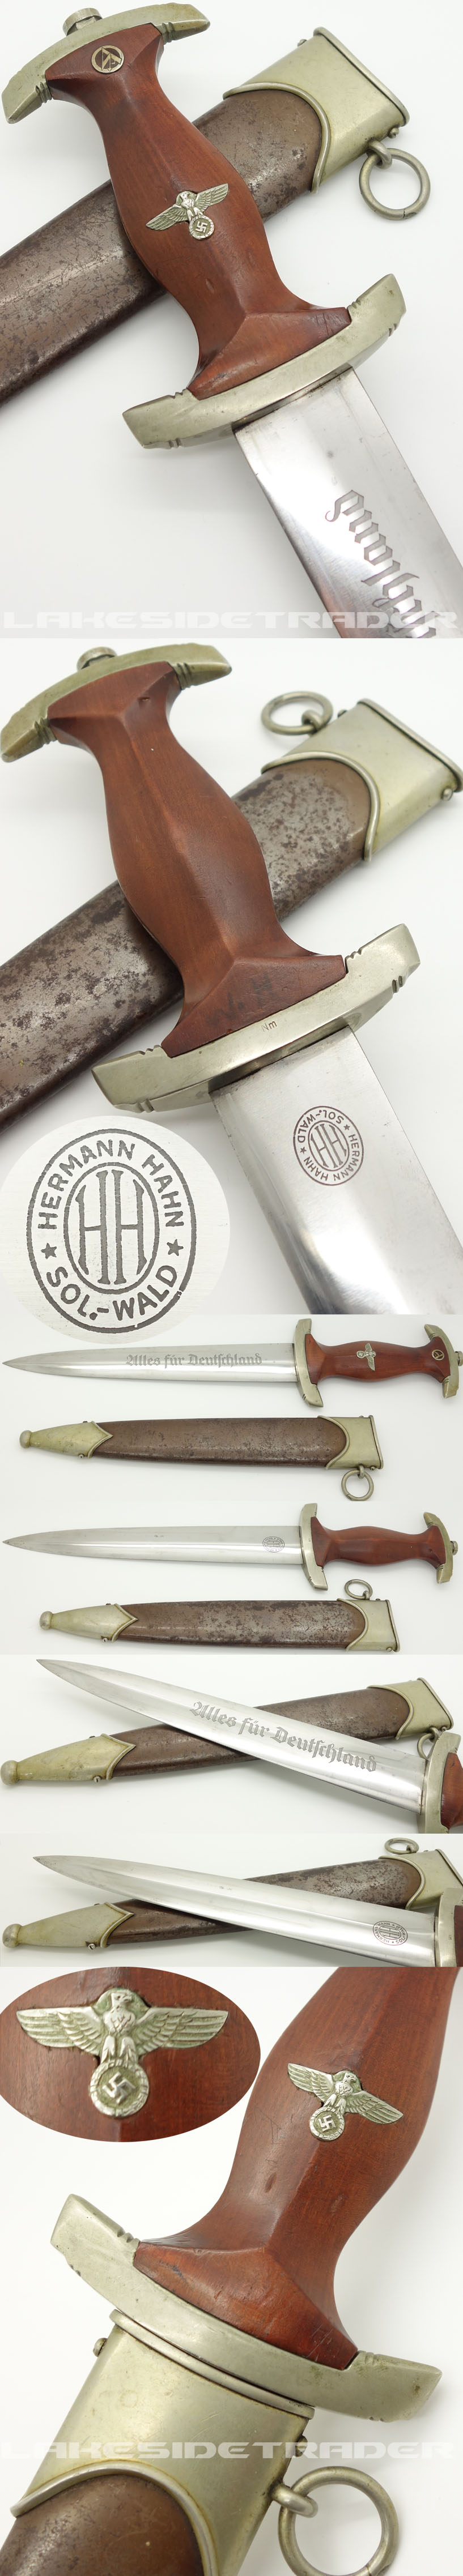 Early SA Dagger by Hermann Hahn